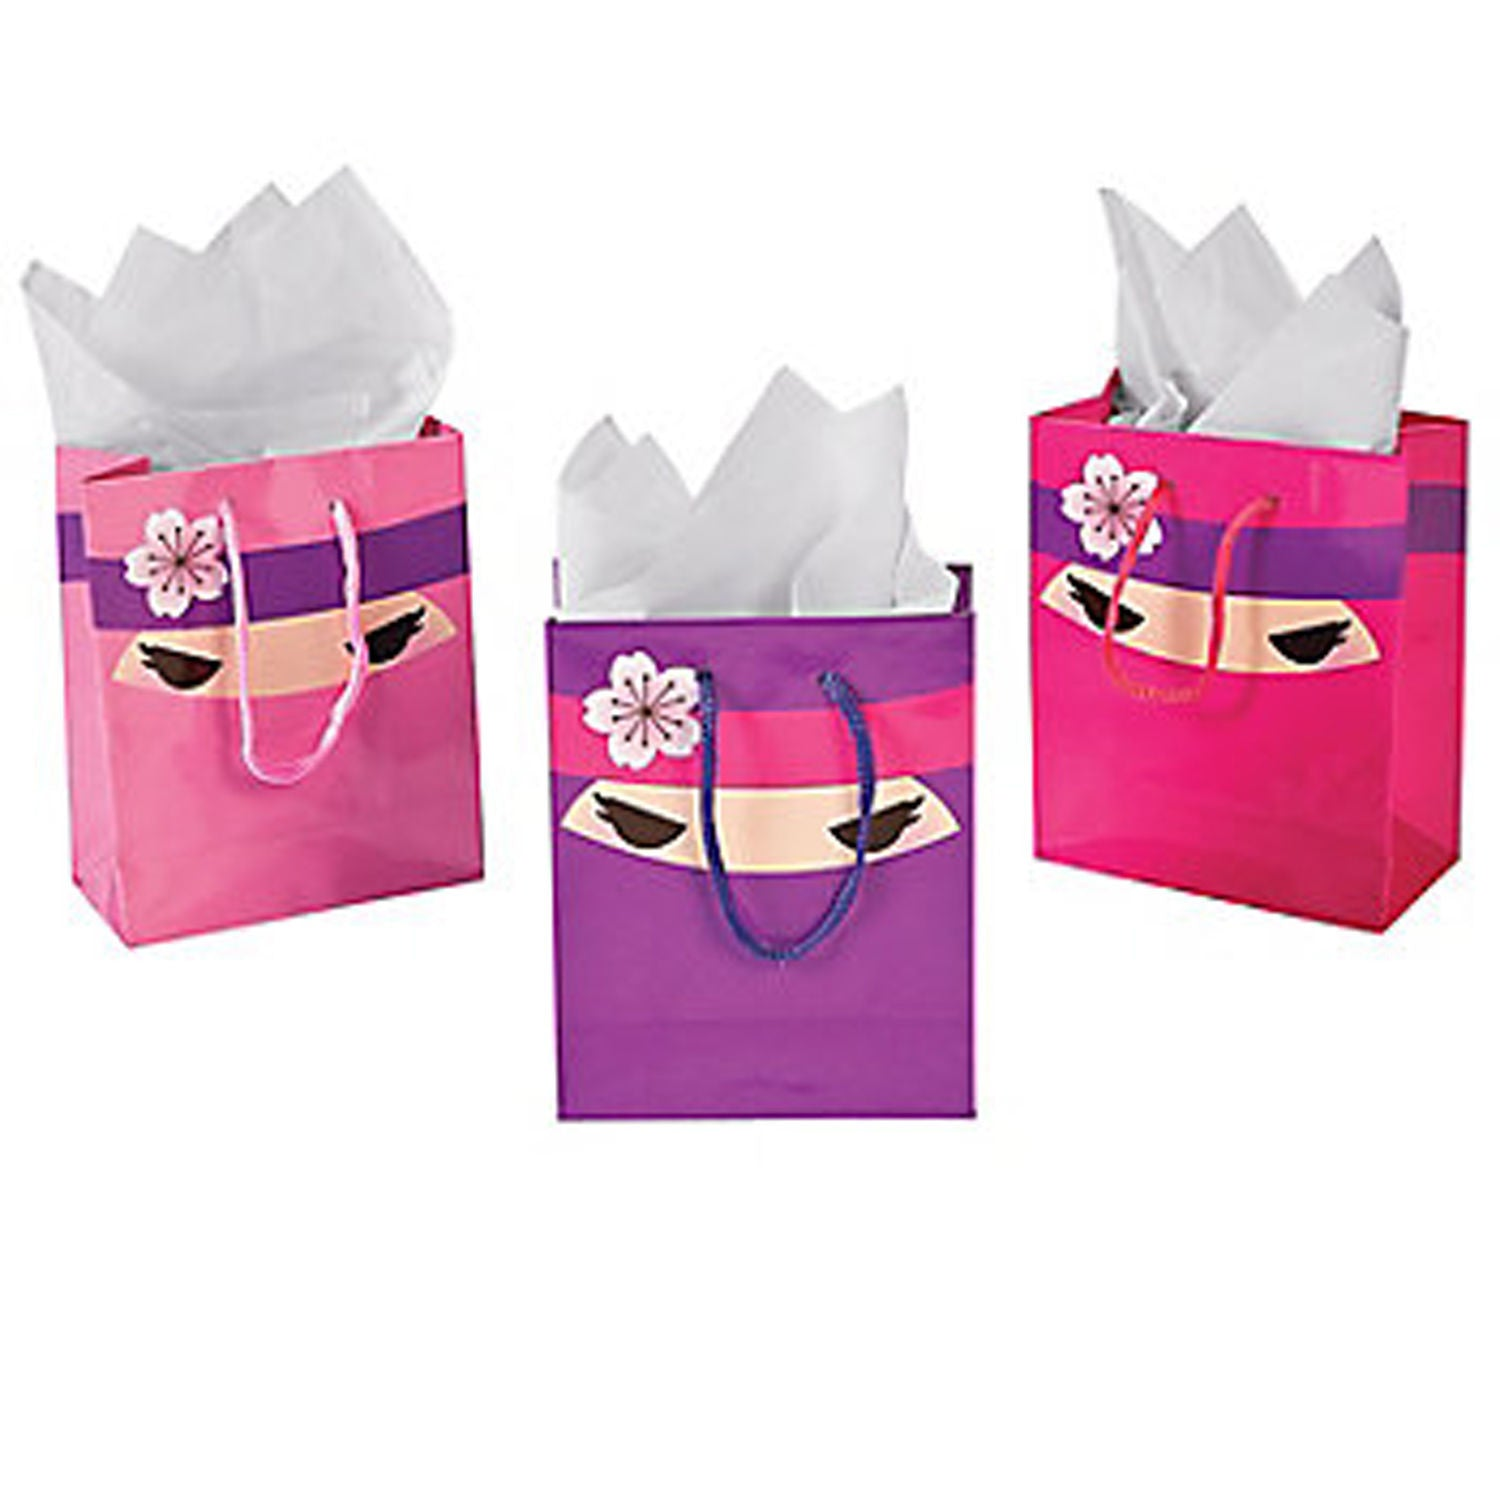 PINK NINJA PARTY Small Gift or Party Bag with Cord Handles and Tag ...